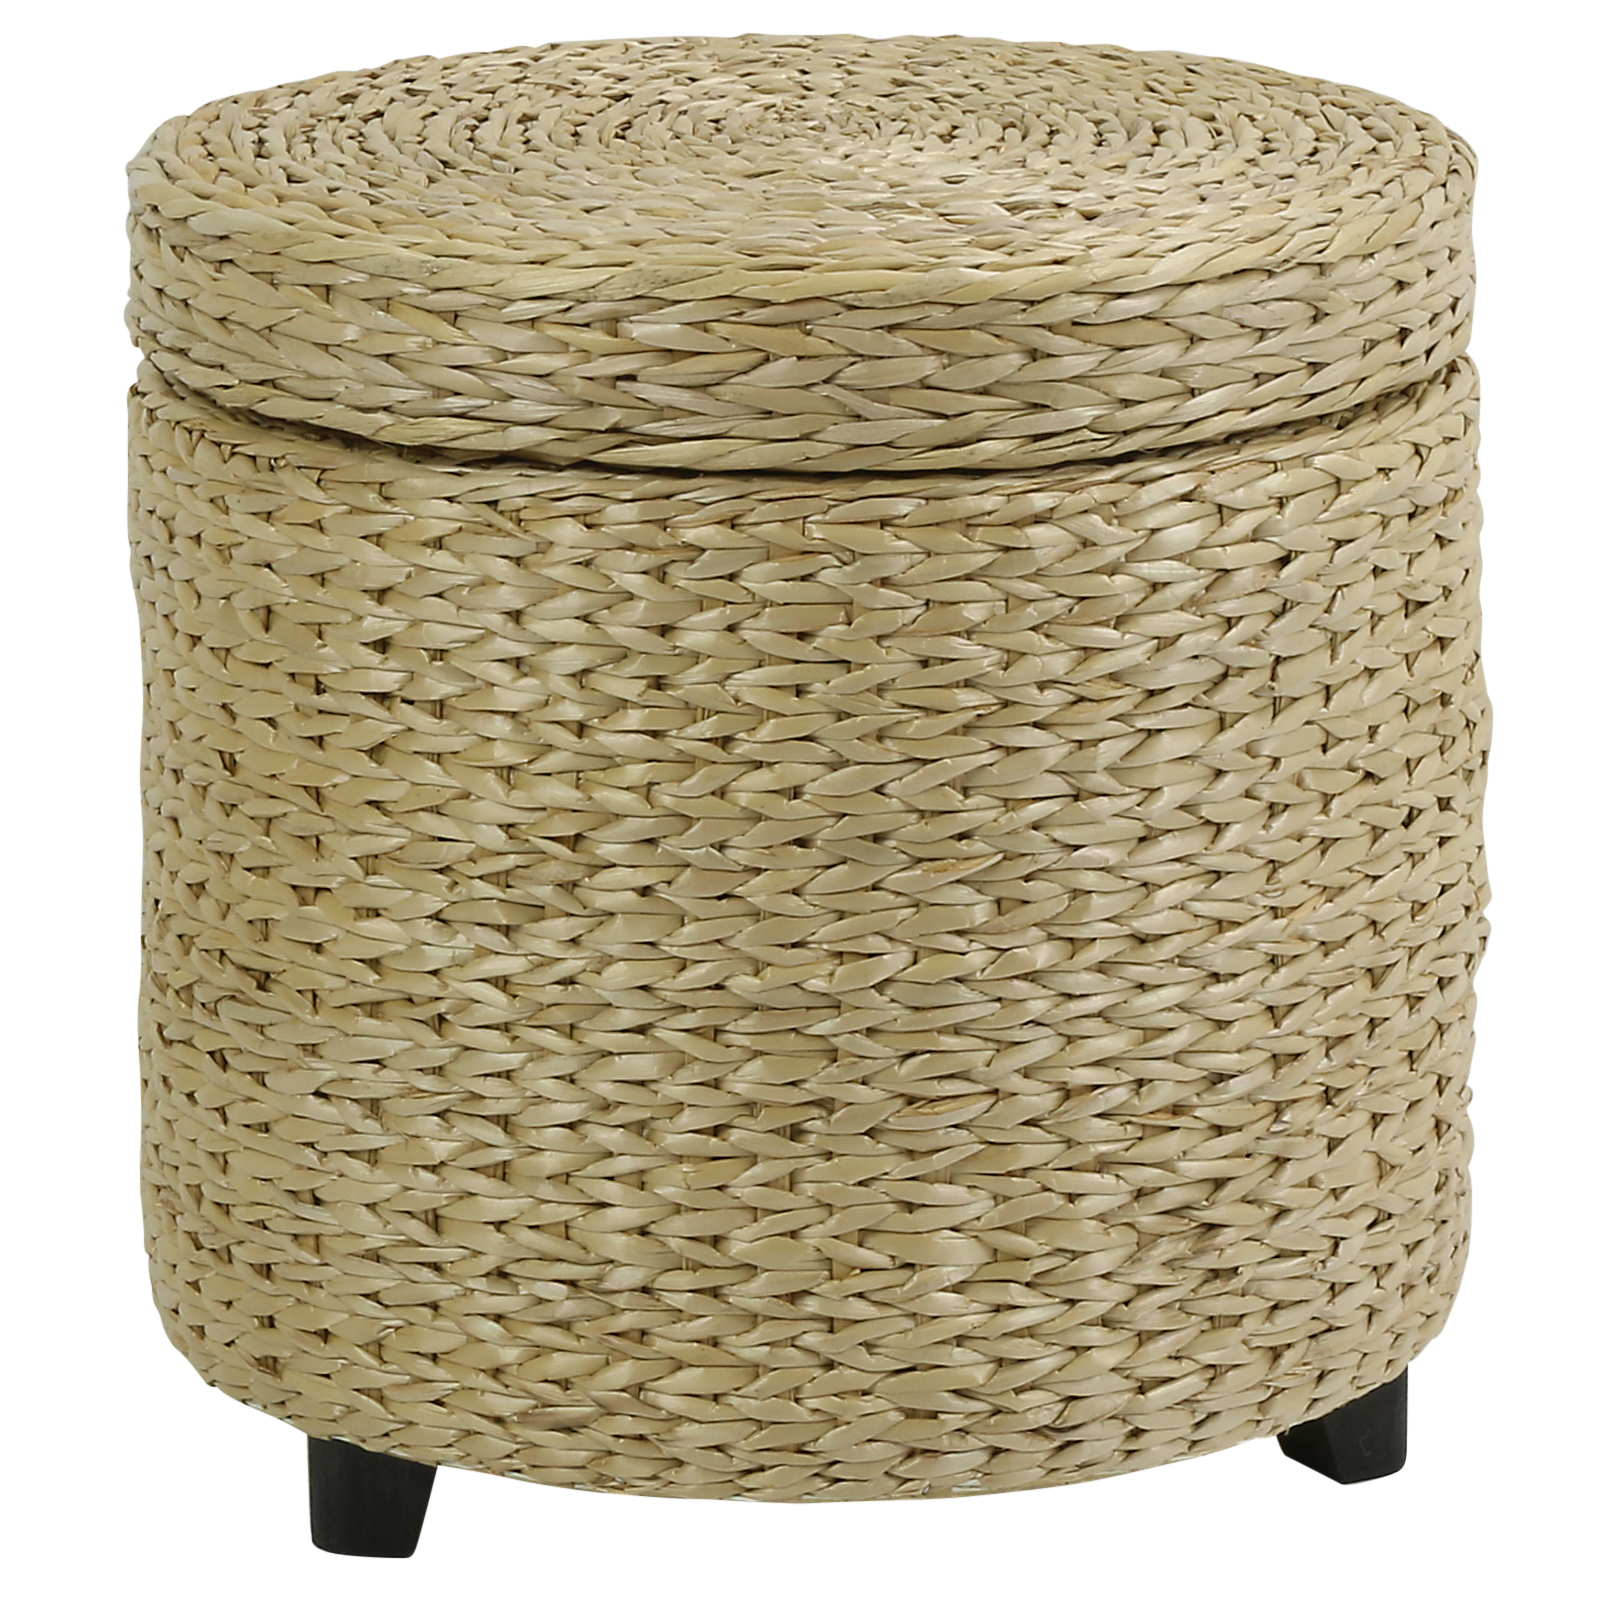 Sentinel ROUND STORAGE OTTOMAN STOOL/SIDE TABLE SEAT WOVEN WICKER RATTAN  STYLE FURNITURE